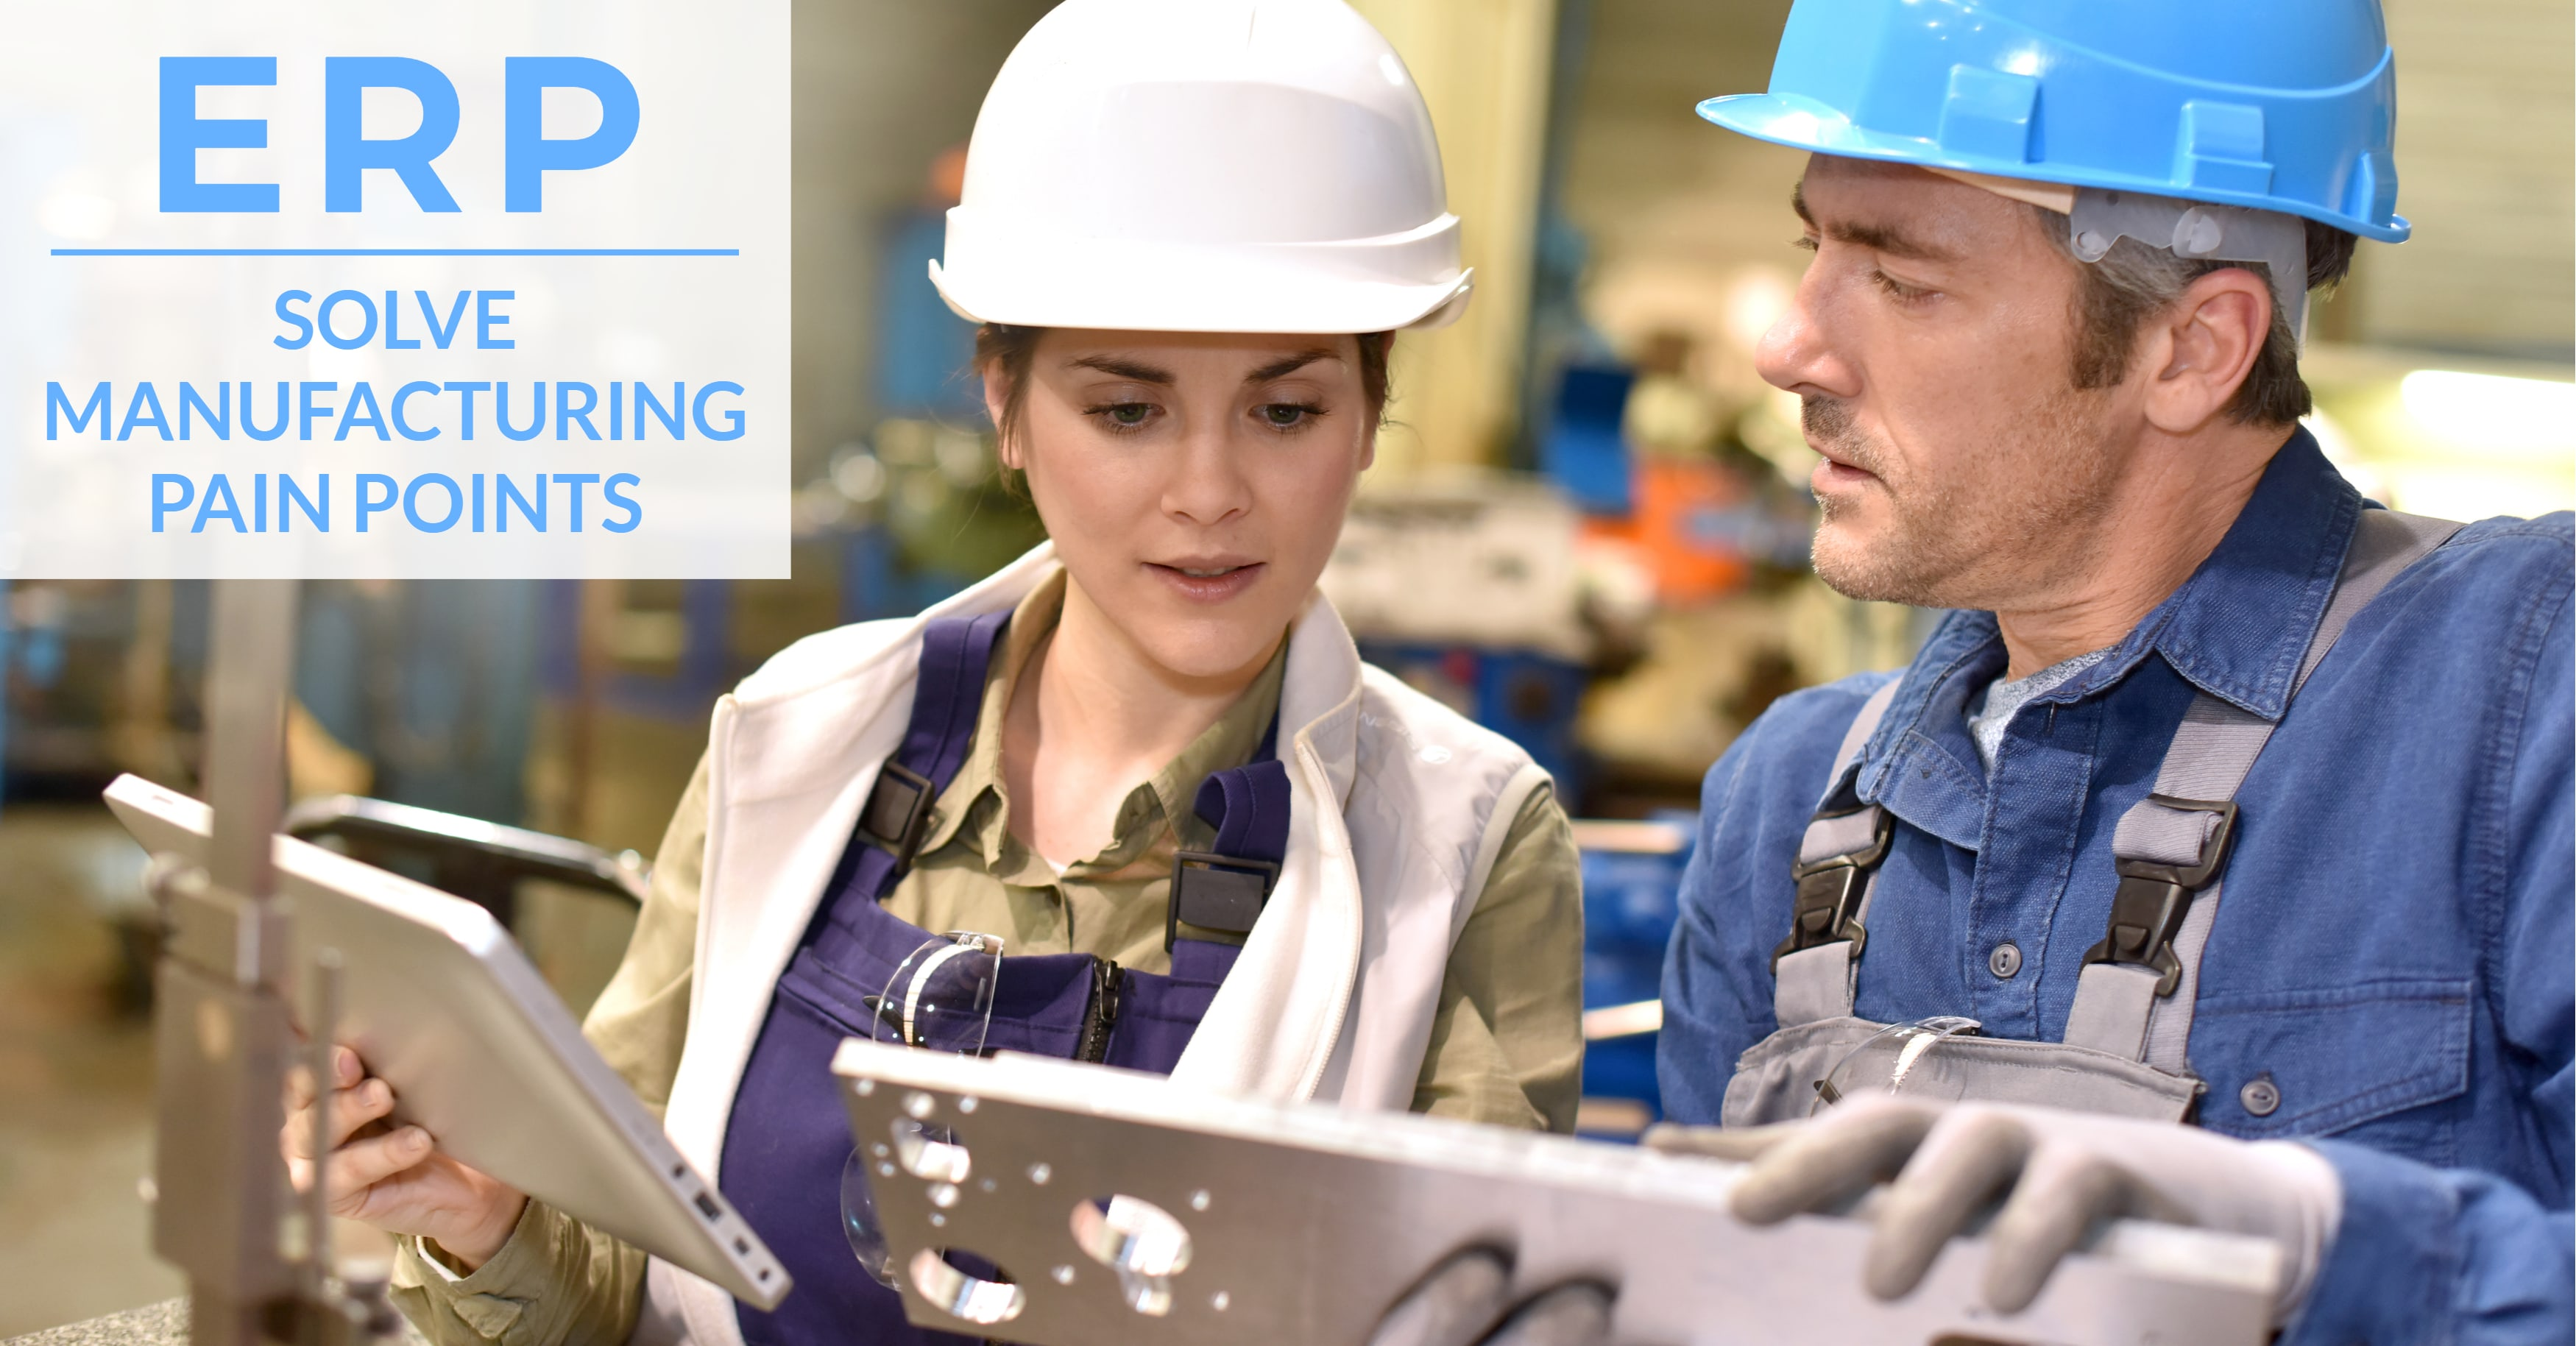 How Can Epicor ERP Solve Manufacturing Pain Points?